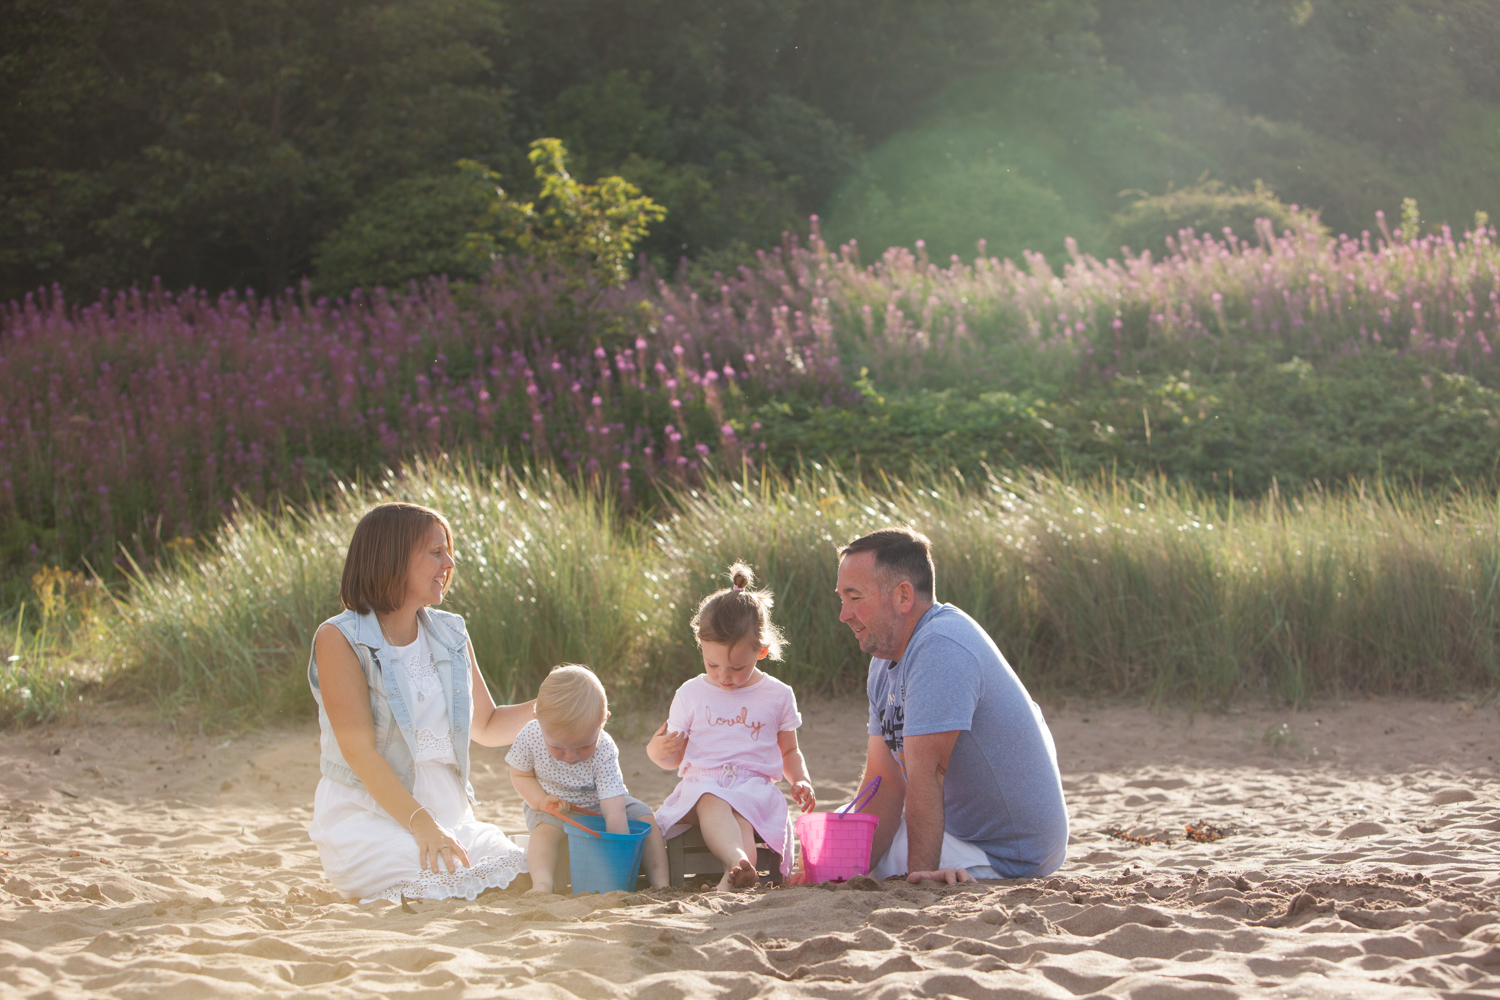 Family at sundown on the beach, styled in pastel clothing